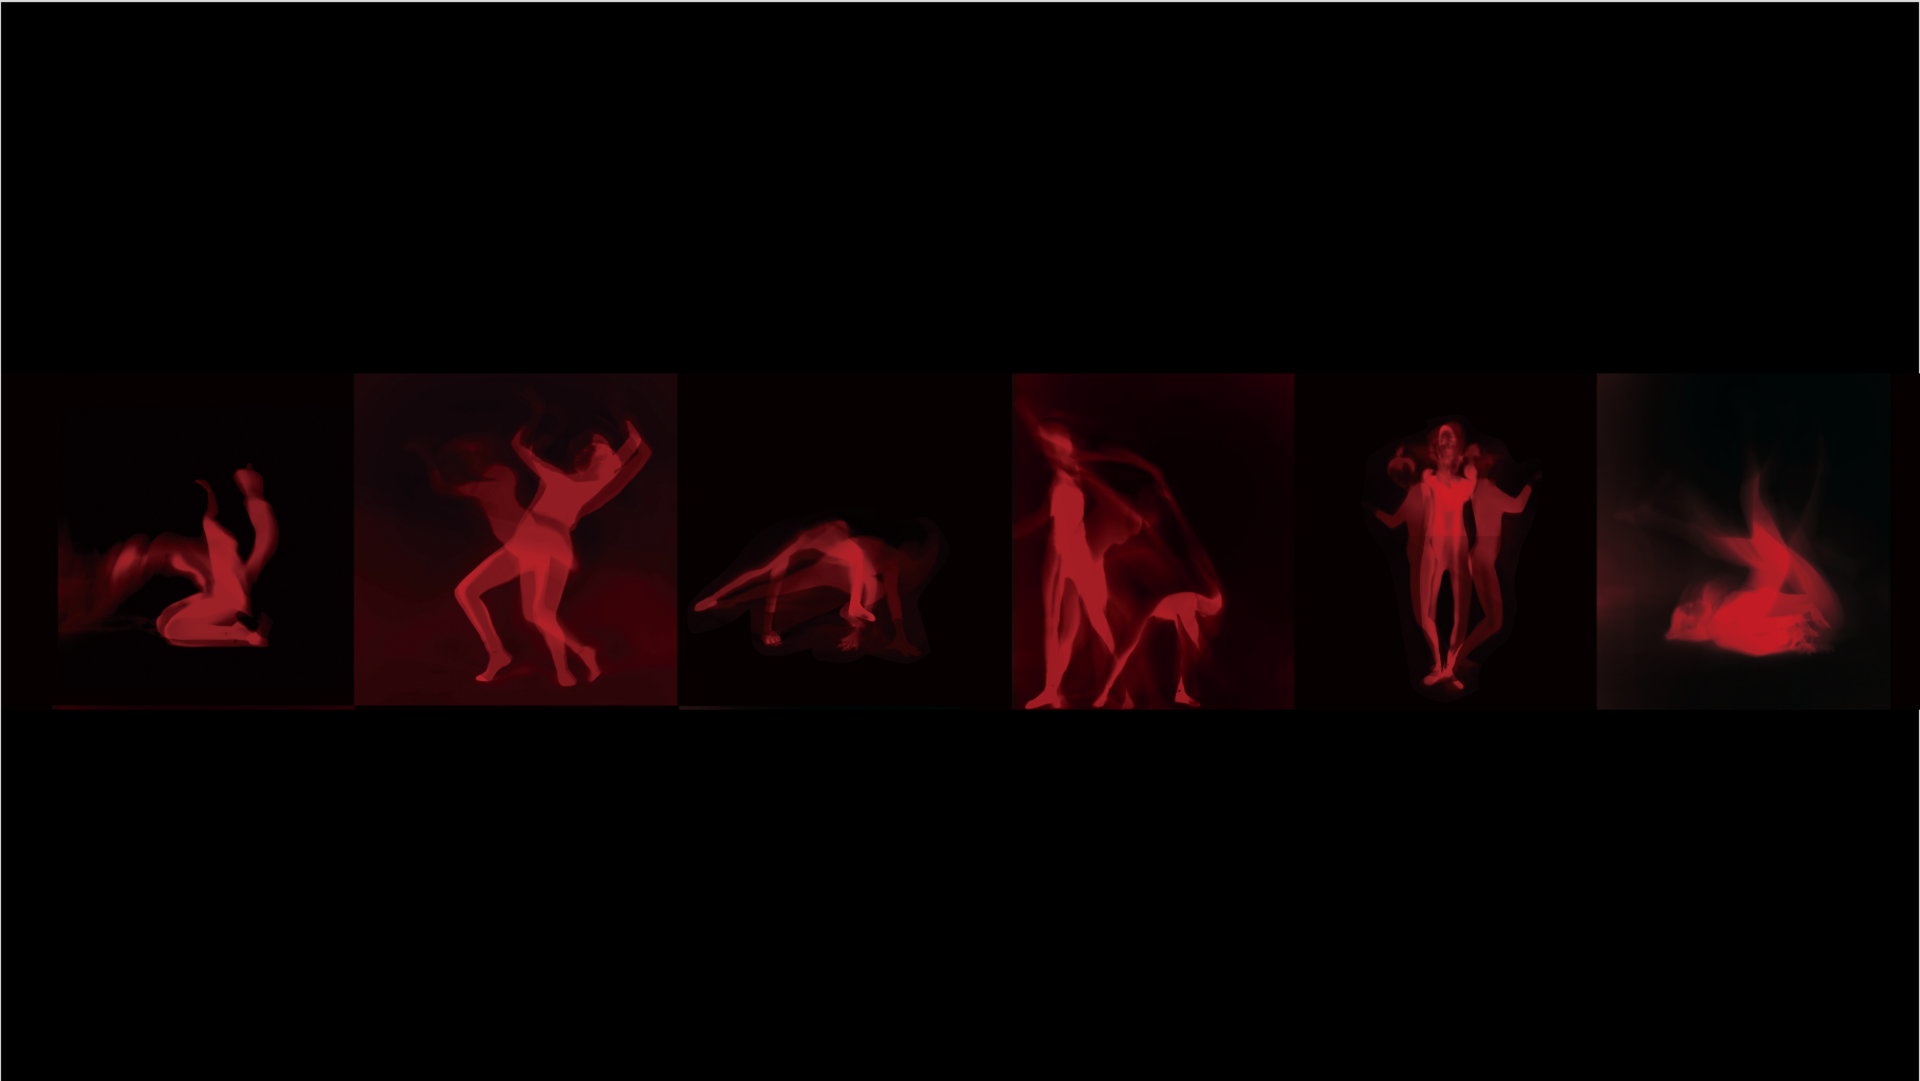 -A ROW OF RED DANCERS-